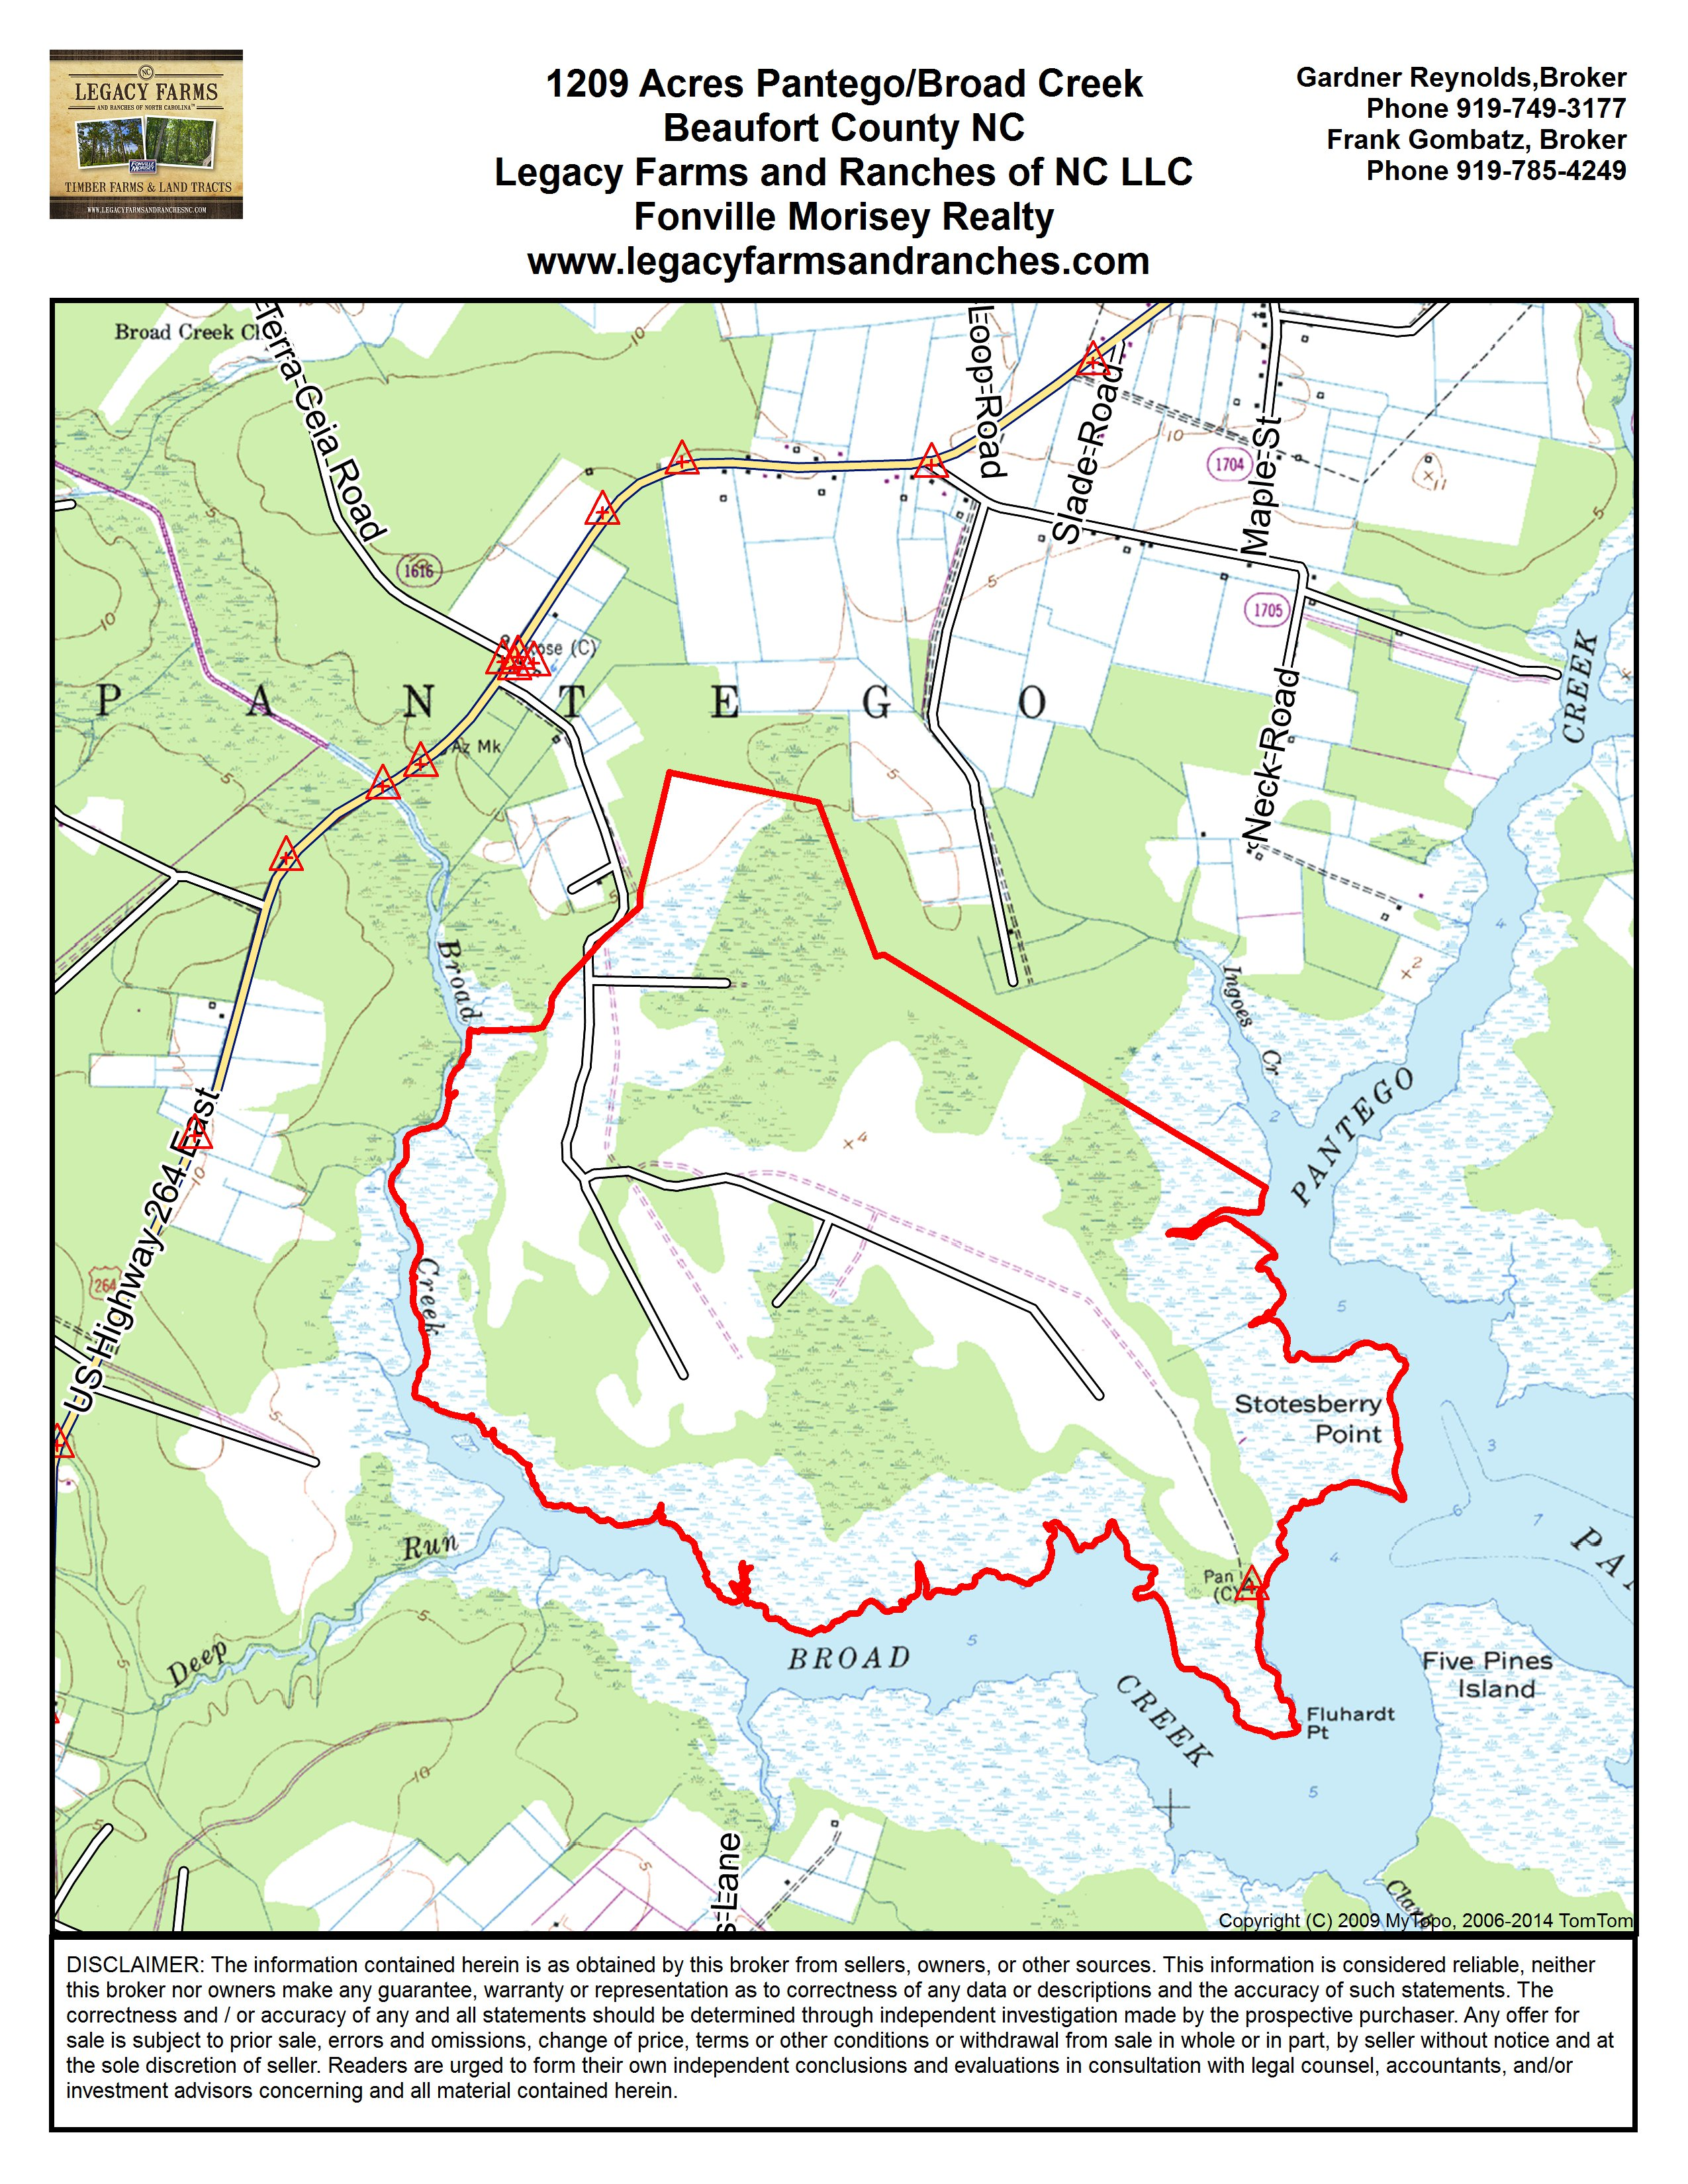 Pantego 1209 Acres on the Inner Banks Beaufort County waterfront